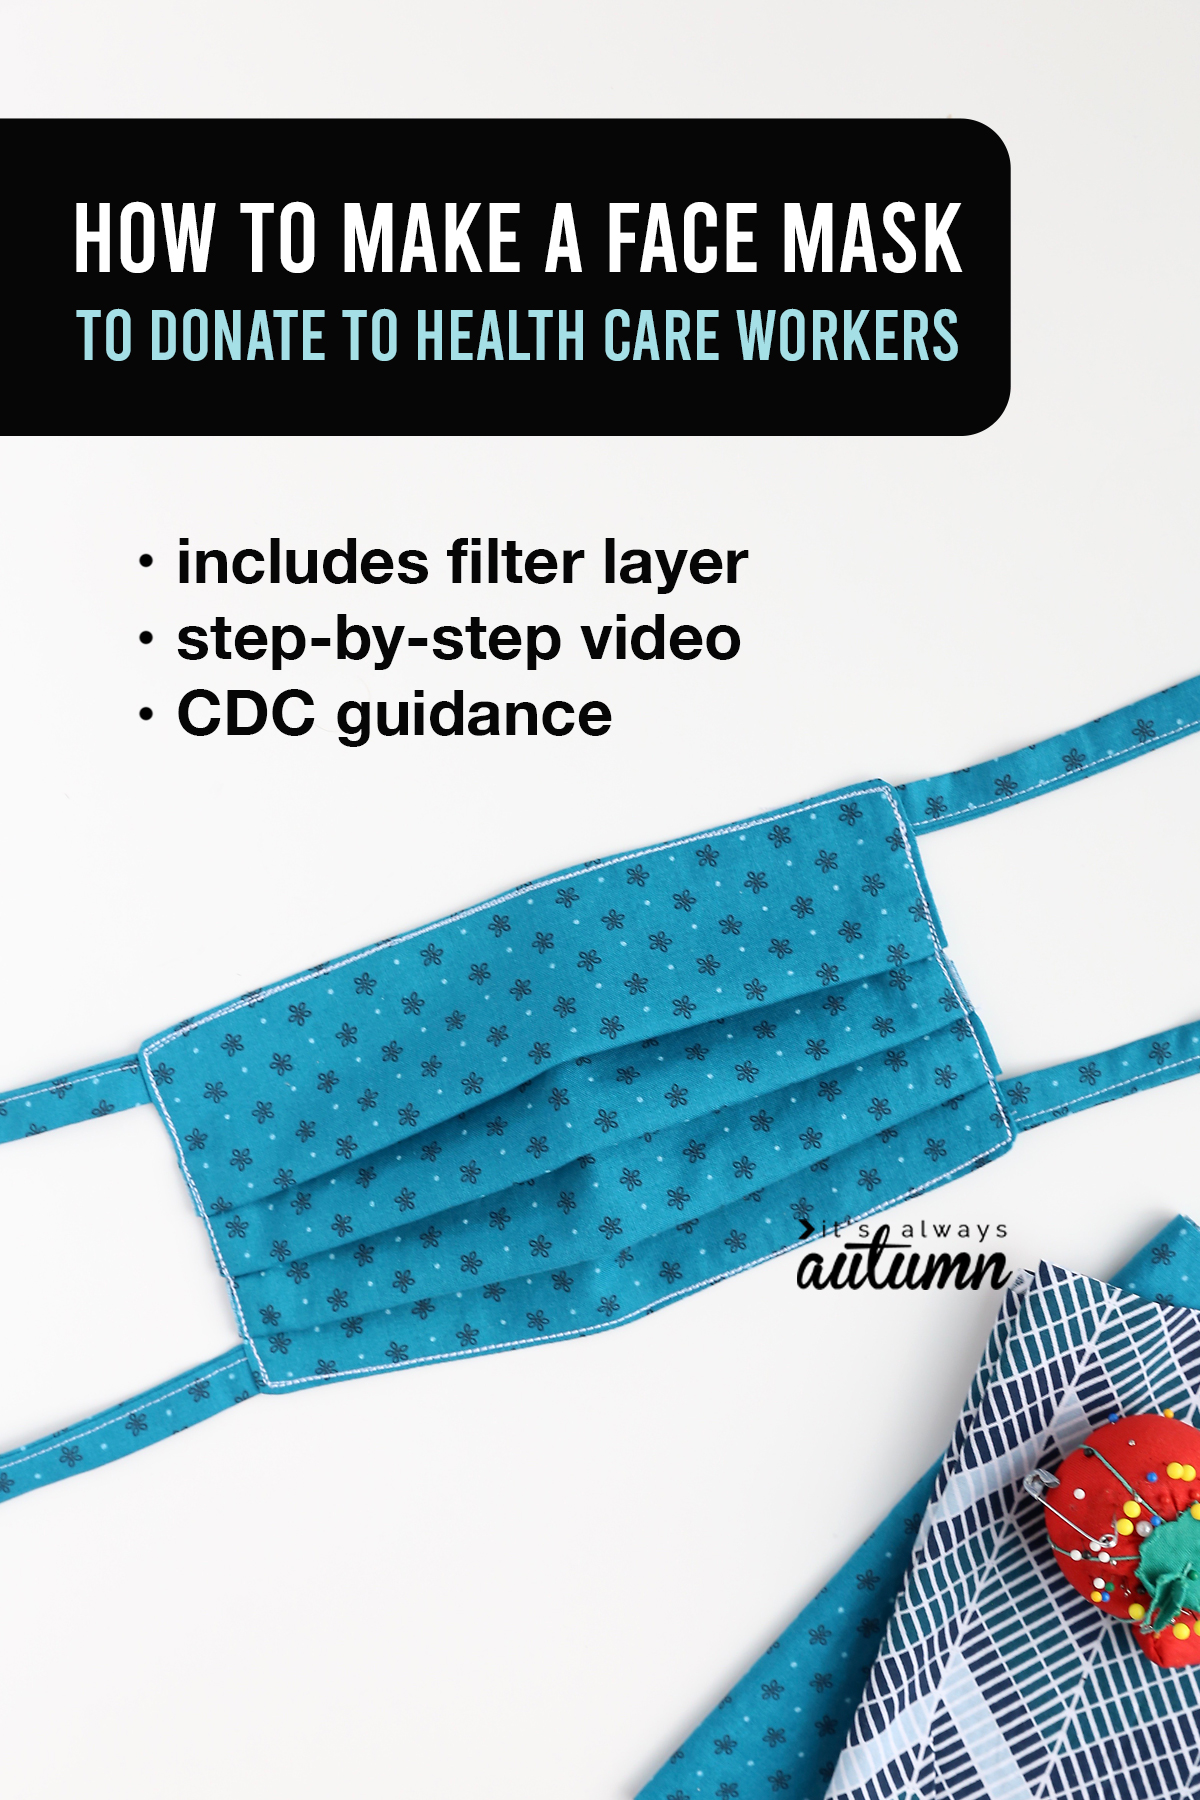 How to make a face mask to donate to health care workers - post includes step by step video as well as CDC guidance.